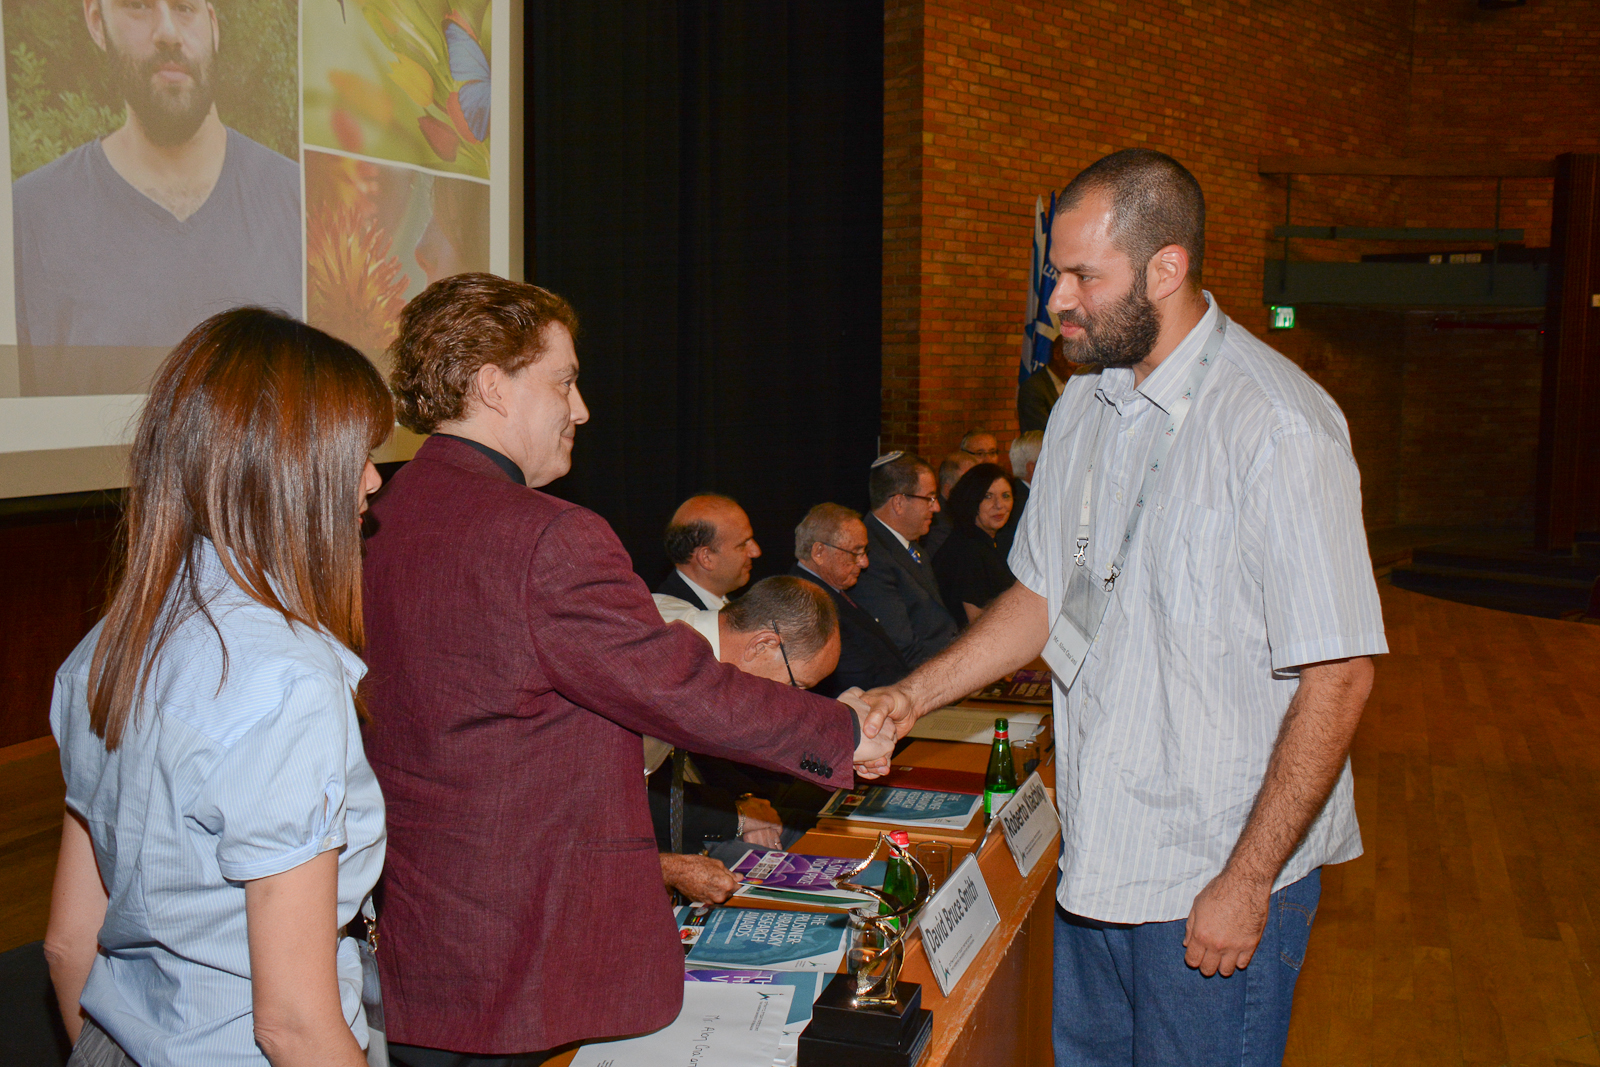 PhD student Alon Cna'ani shaking hands with David Bruce Smith at the award ceremony on June 1, 2016, at the Hebrew University of Jerusalem. Photo by Douglas Guthrie